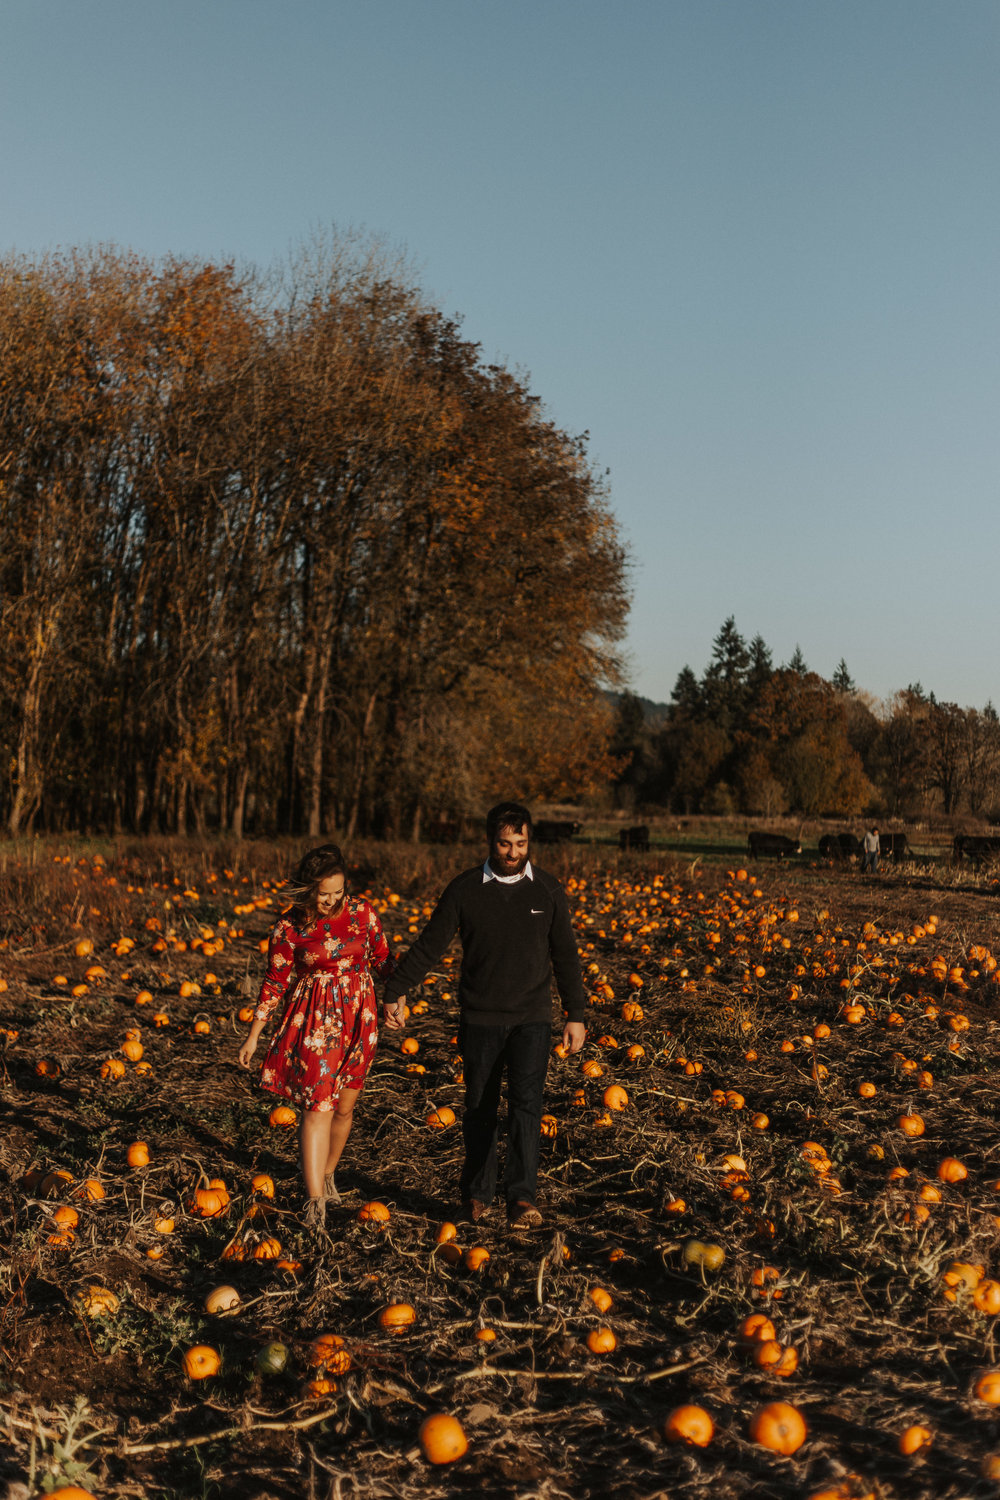 August-Muse-images-taylor-kelsey-vancouver-pumpkin-patch-washington-engagement-14.jpg